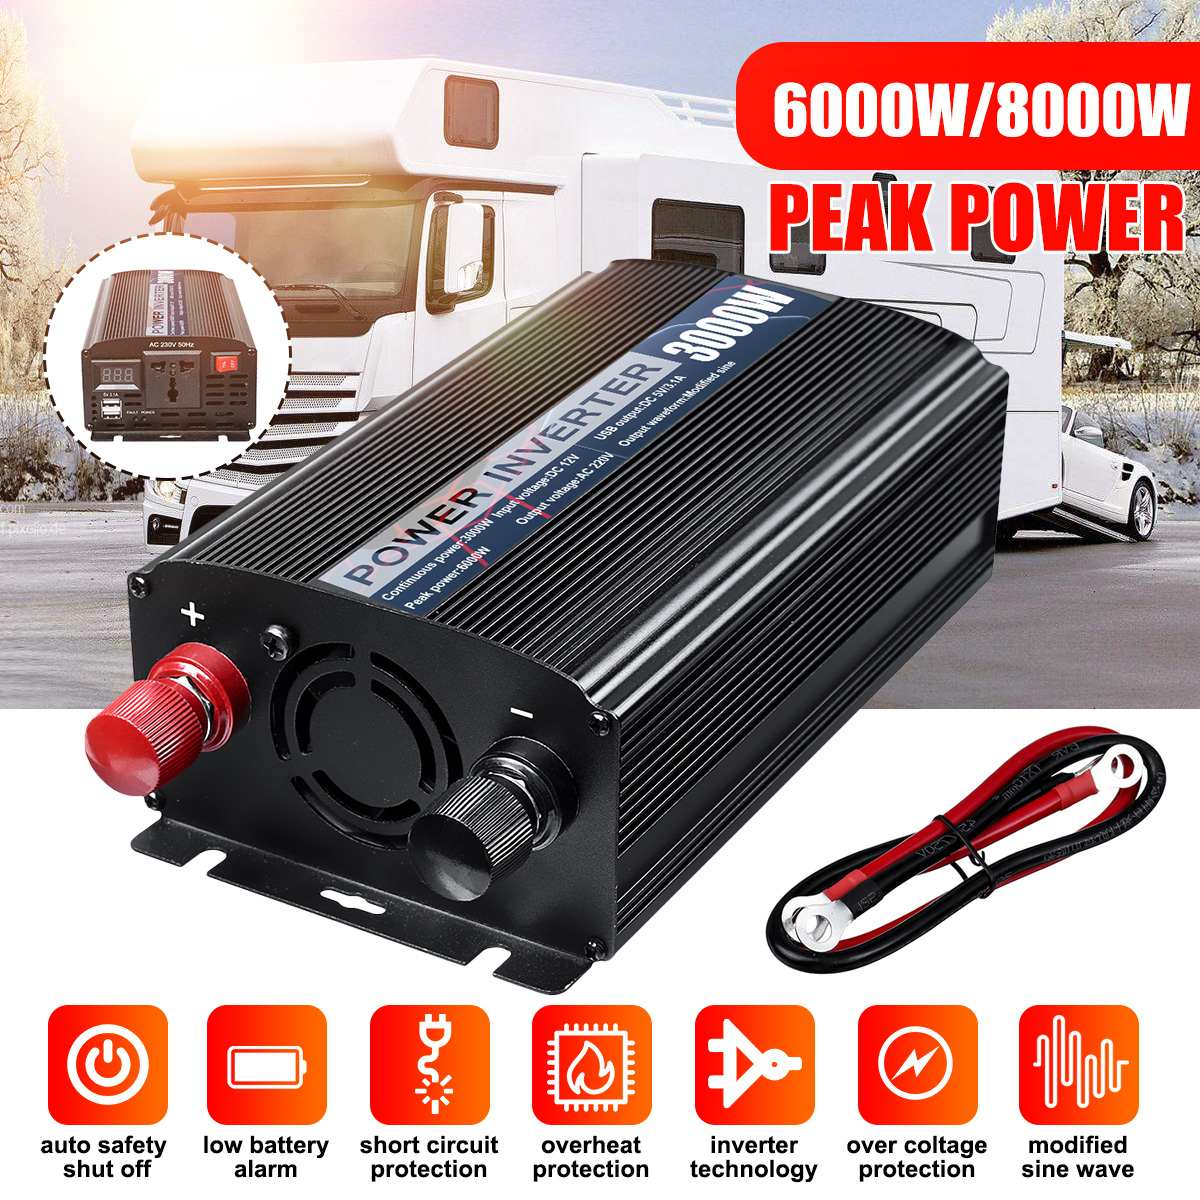 Dual USB Max 6000/8000W DC12V to AC220V Car Power Inverter Charger Converter Adapter DC12 to AC220 Modified Sine Wave Transromer